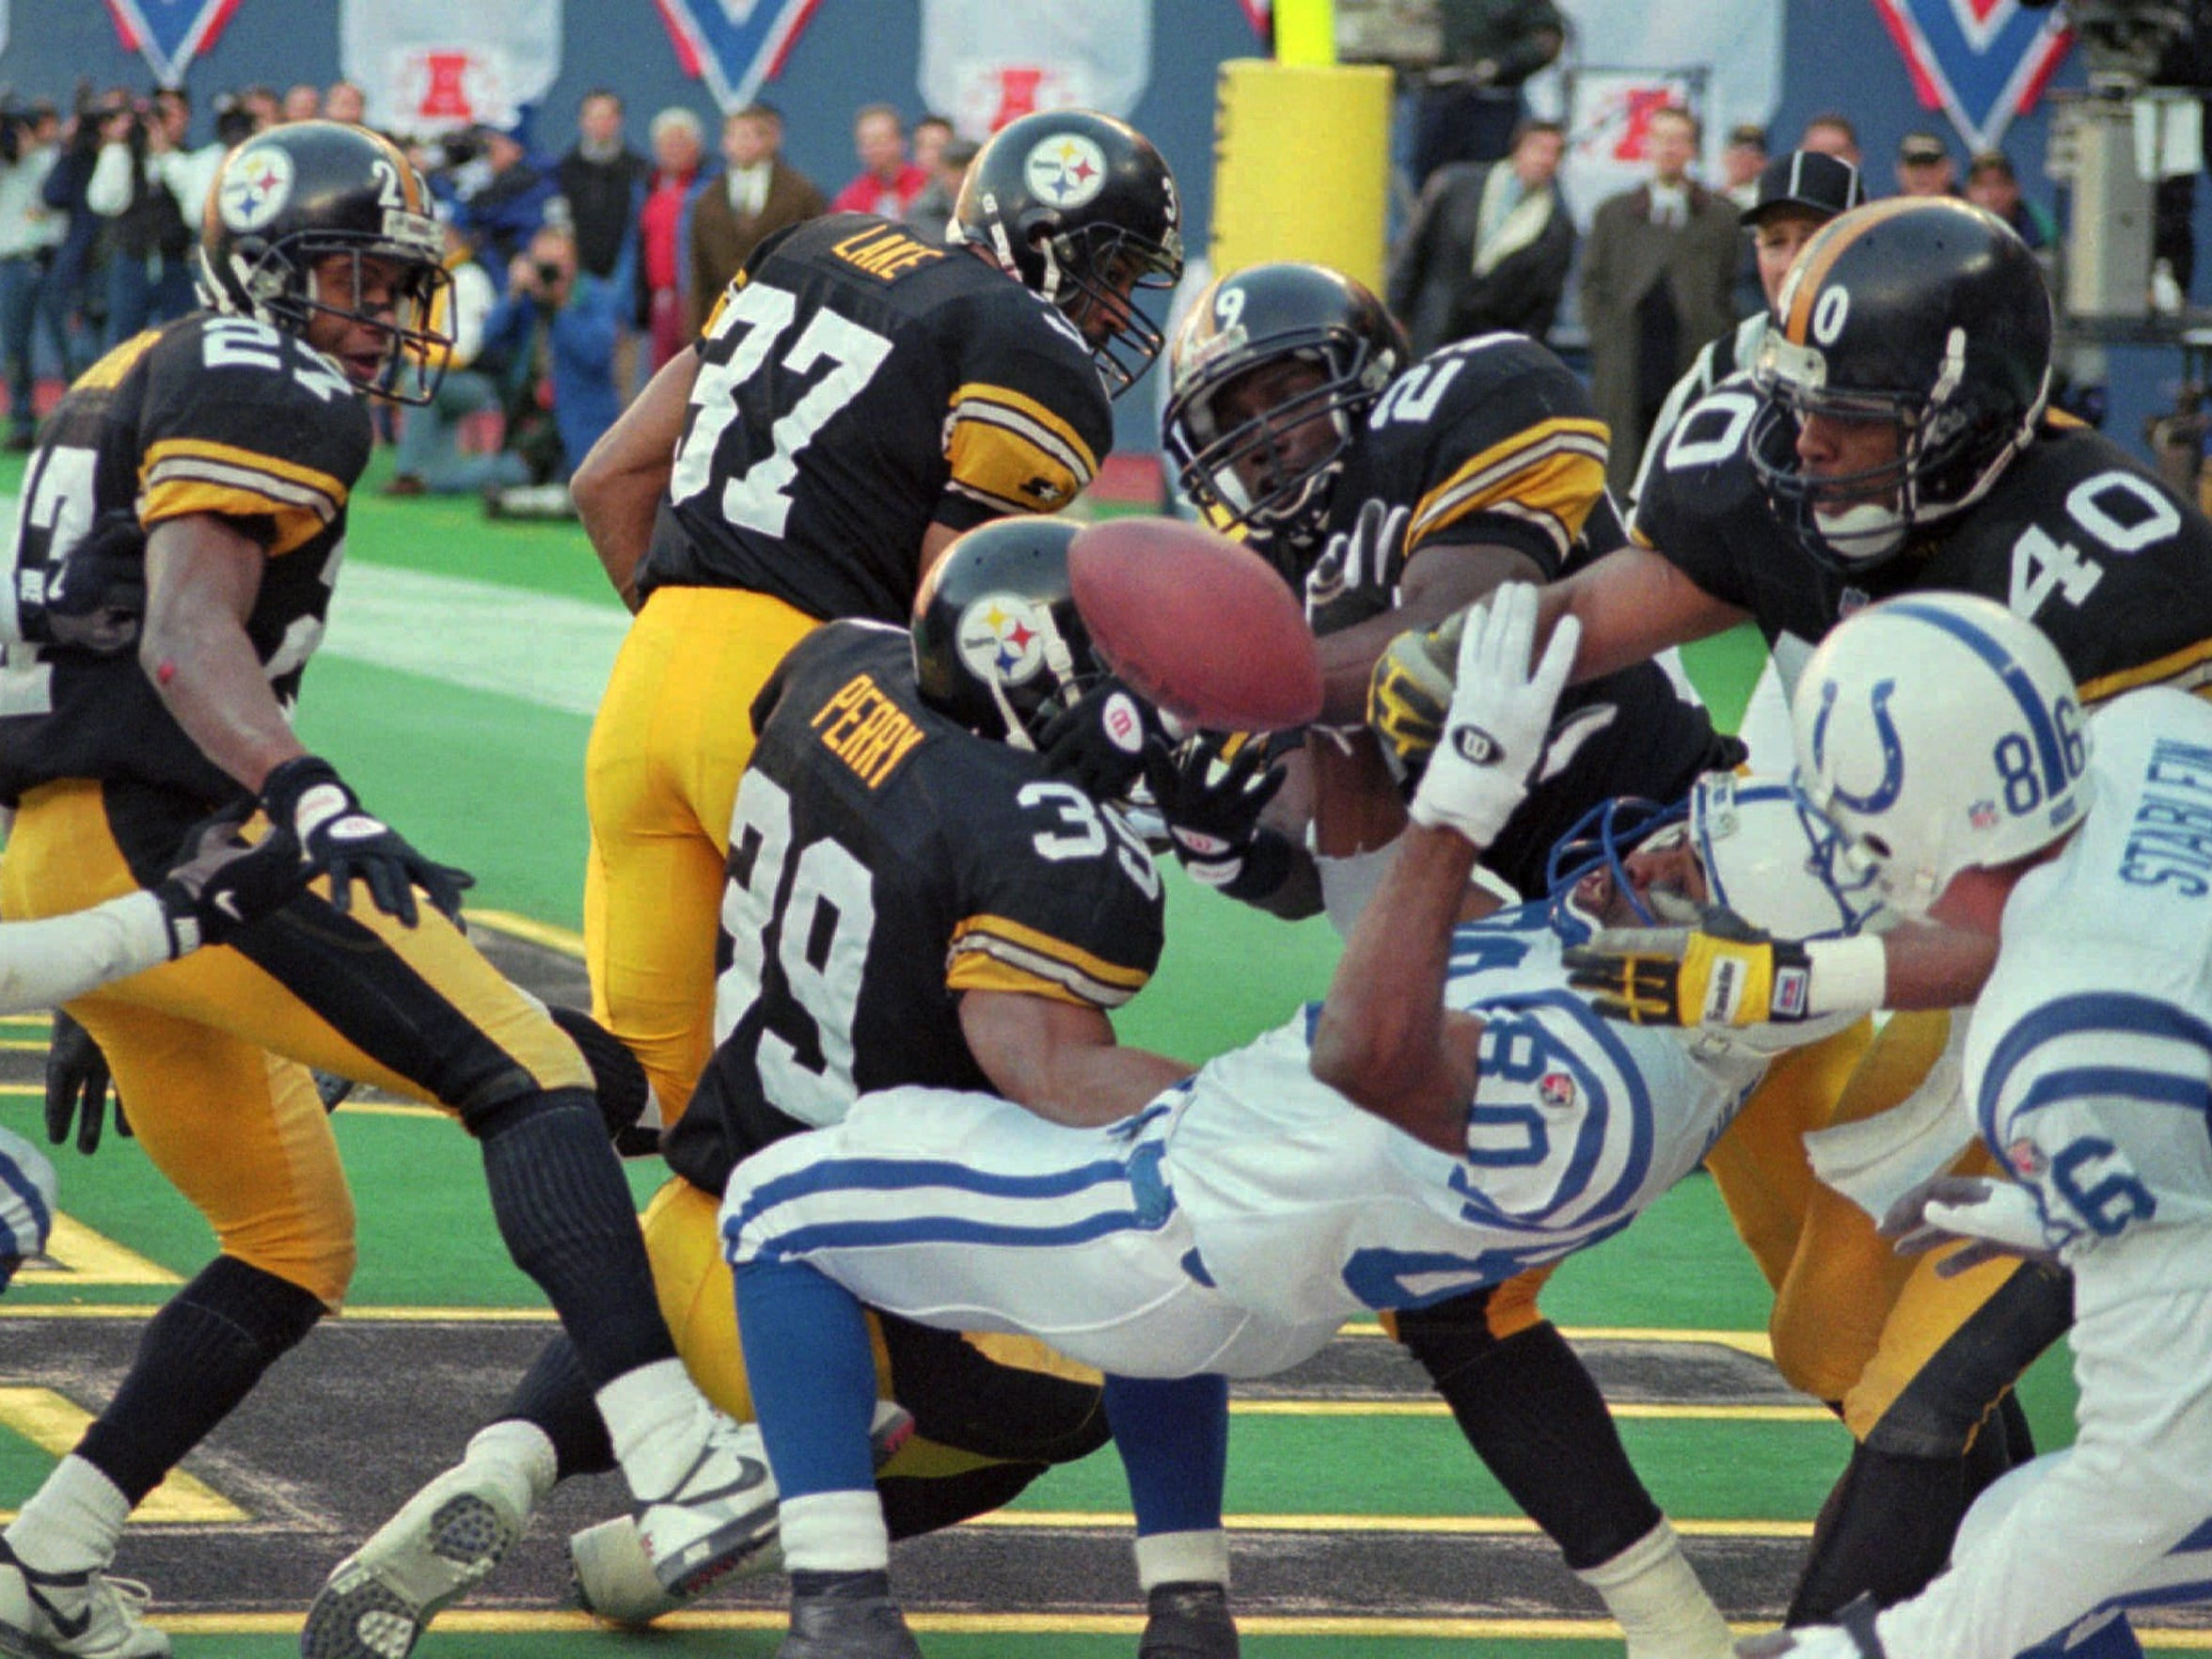 The final play of the 1995 AFC Championship Game: Colts wide receiver Aaron Bailey and several Steelers defenders go for the football on a final-second Hail Mary attempt from quarterback Jim Harbaugh.